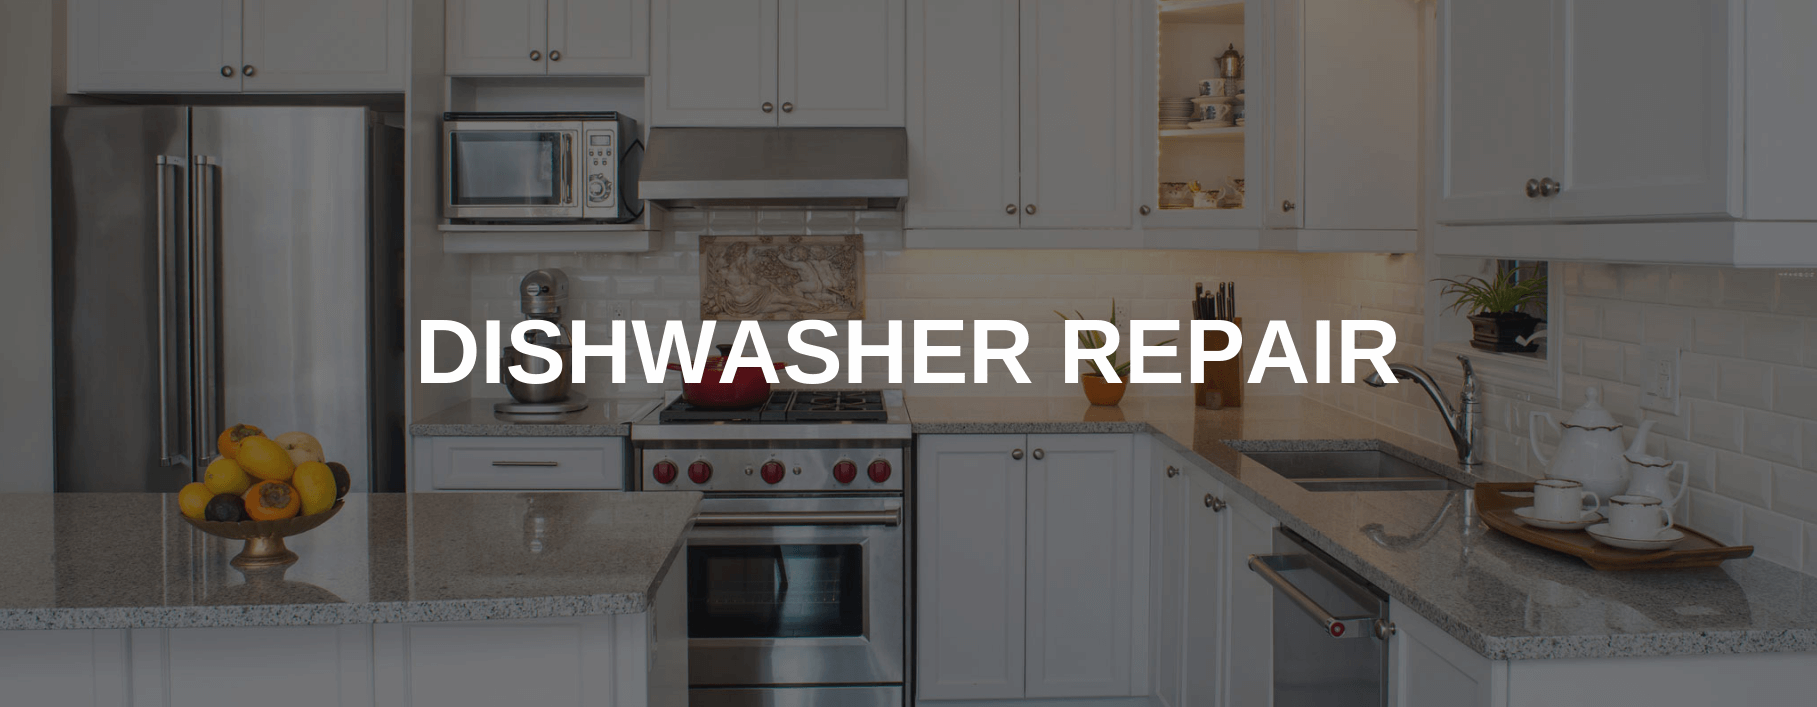 dishwasher repair city